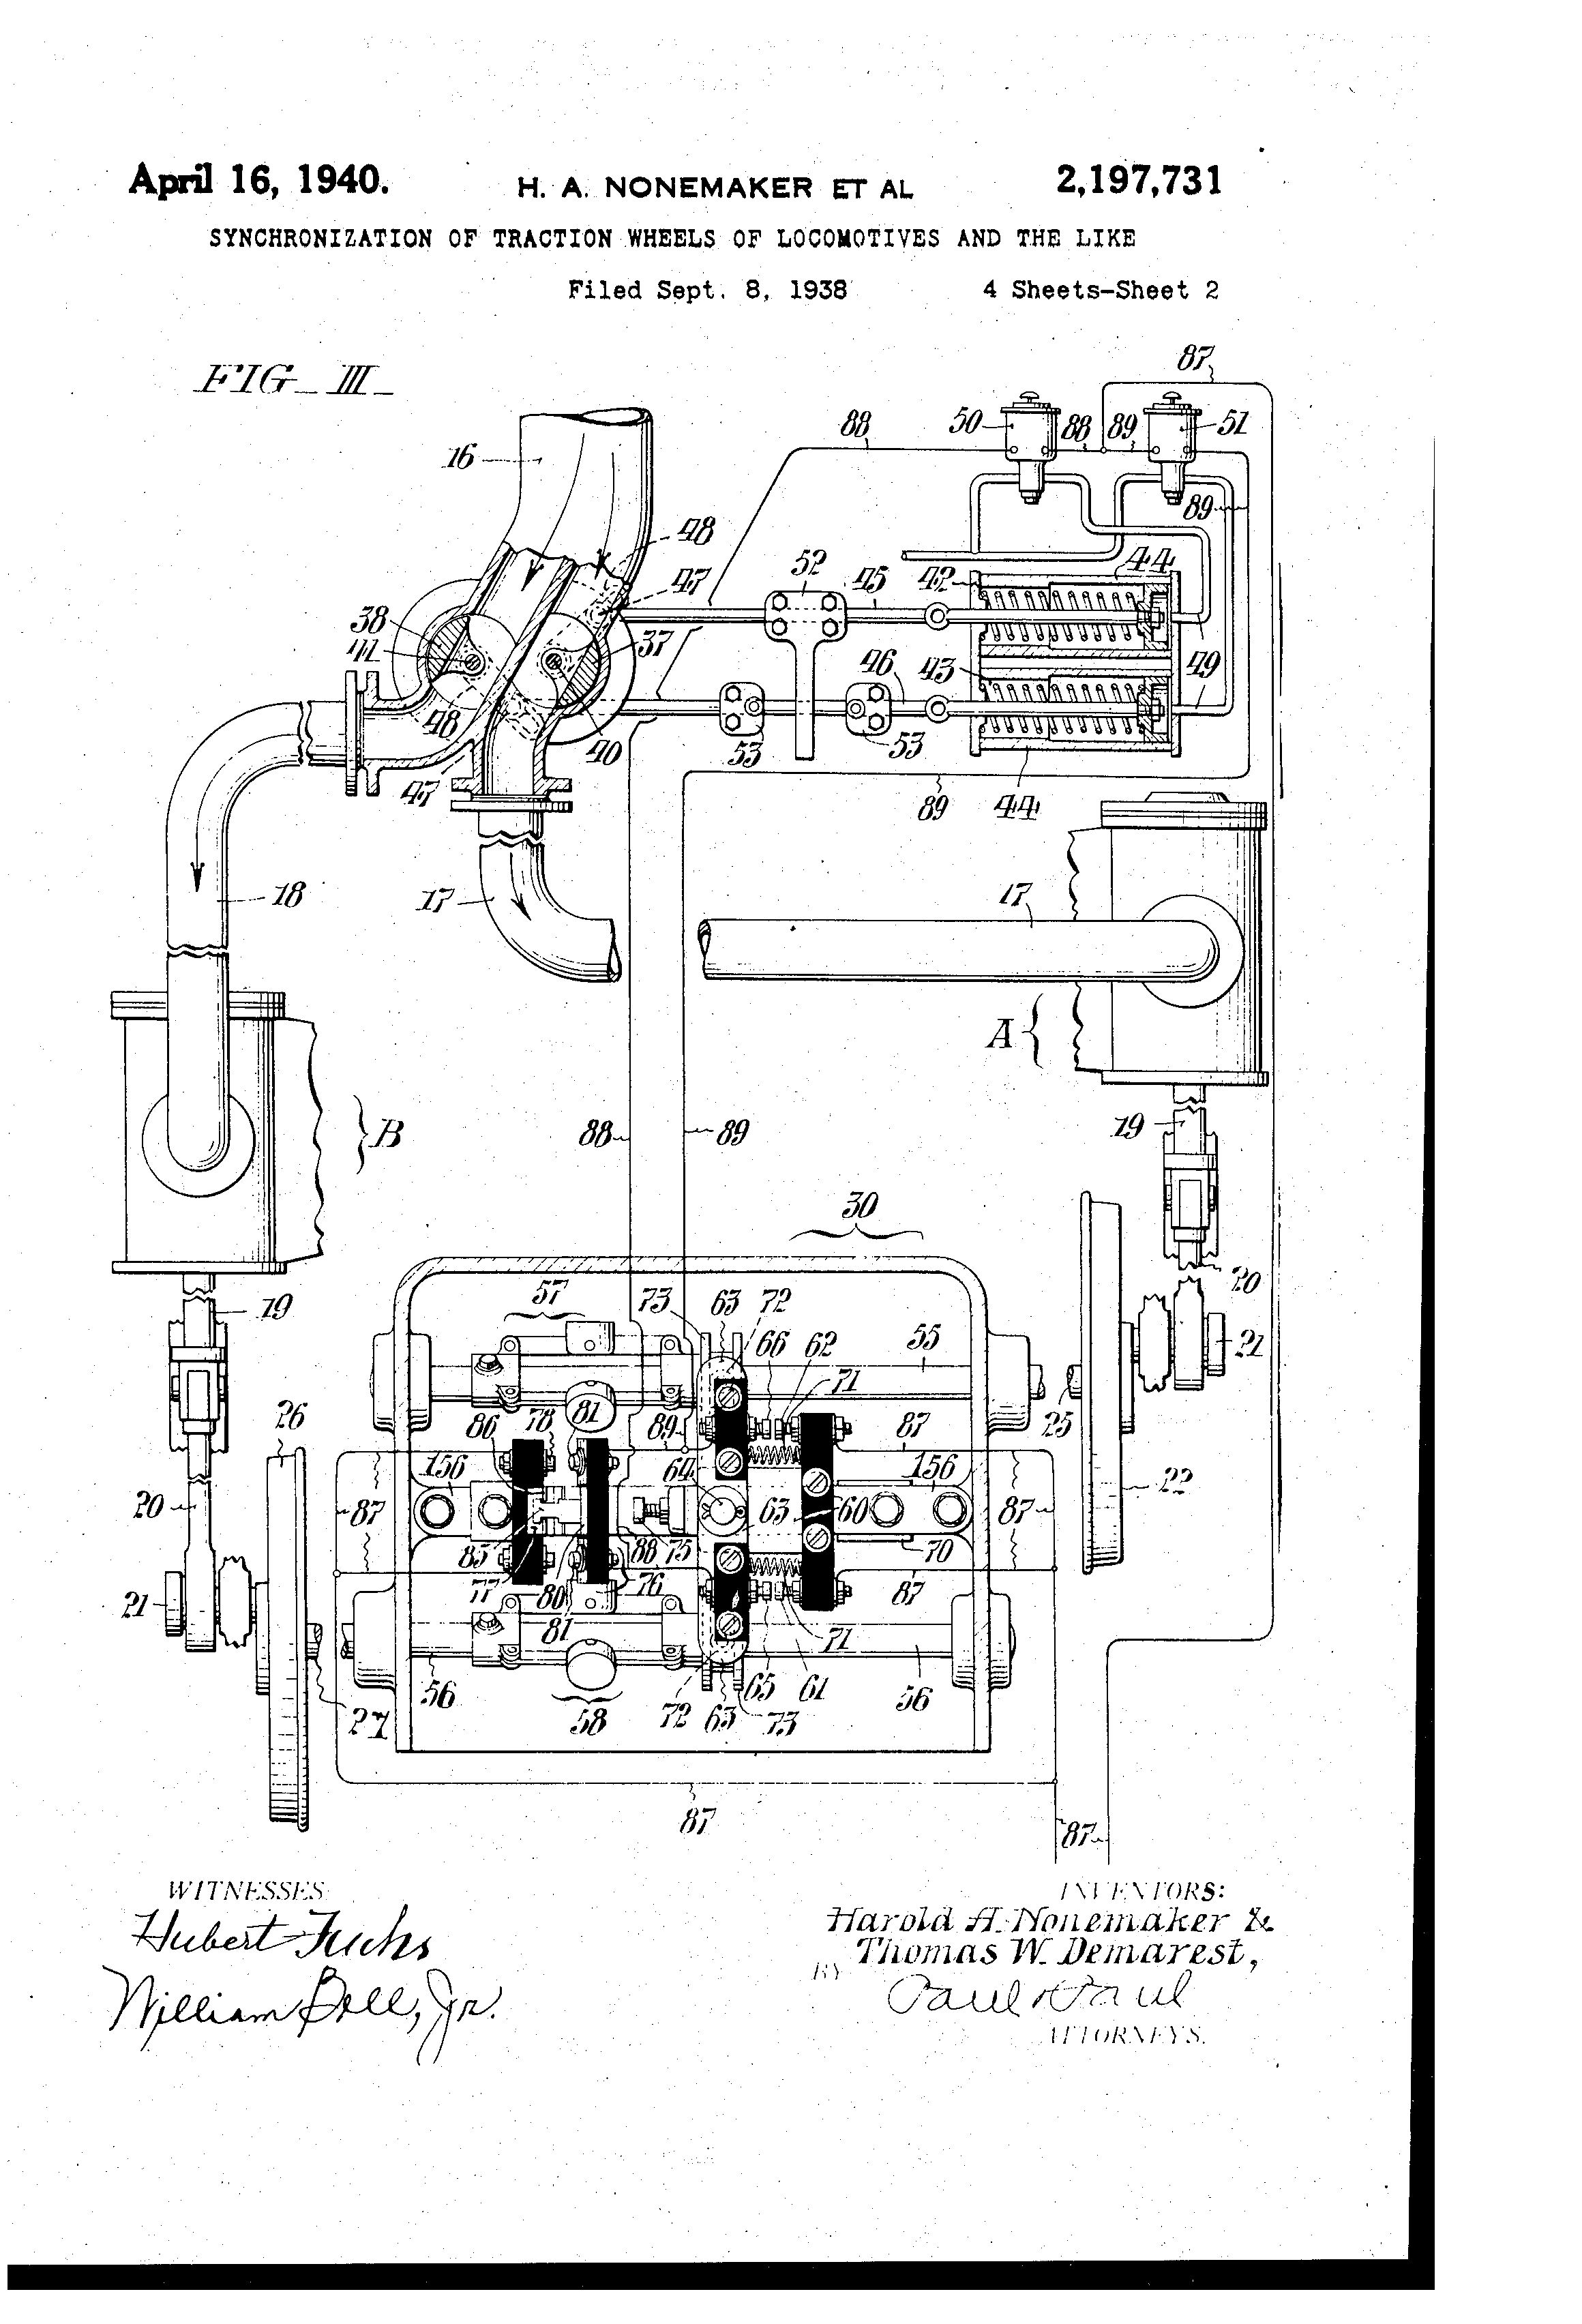 Prr Duplexes And Experimental Engines Discussion S1 S2 T1 Etc Charging Circuit Diagram For The 1940 49 Hudson All Models Inventor